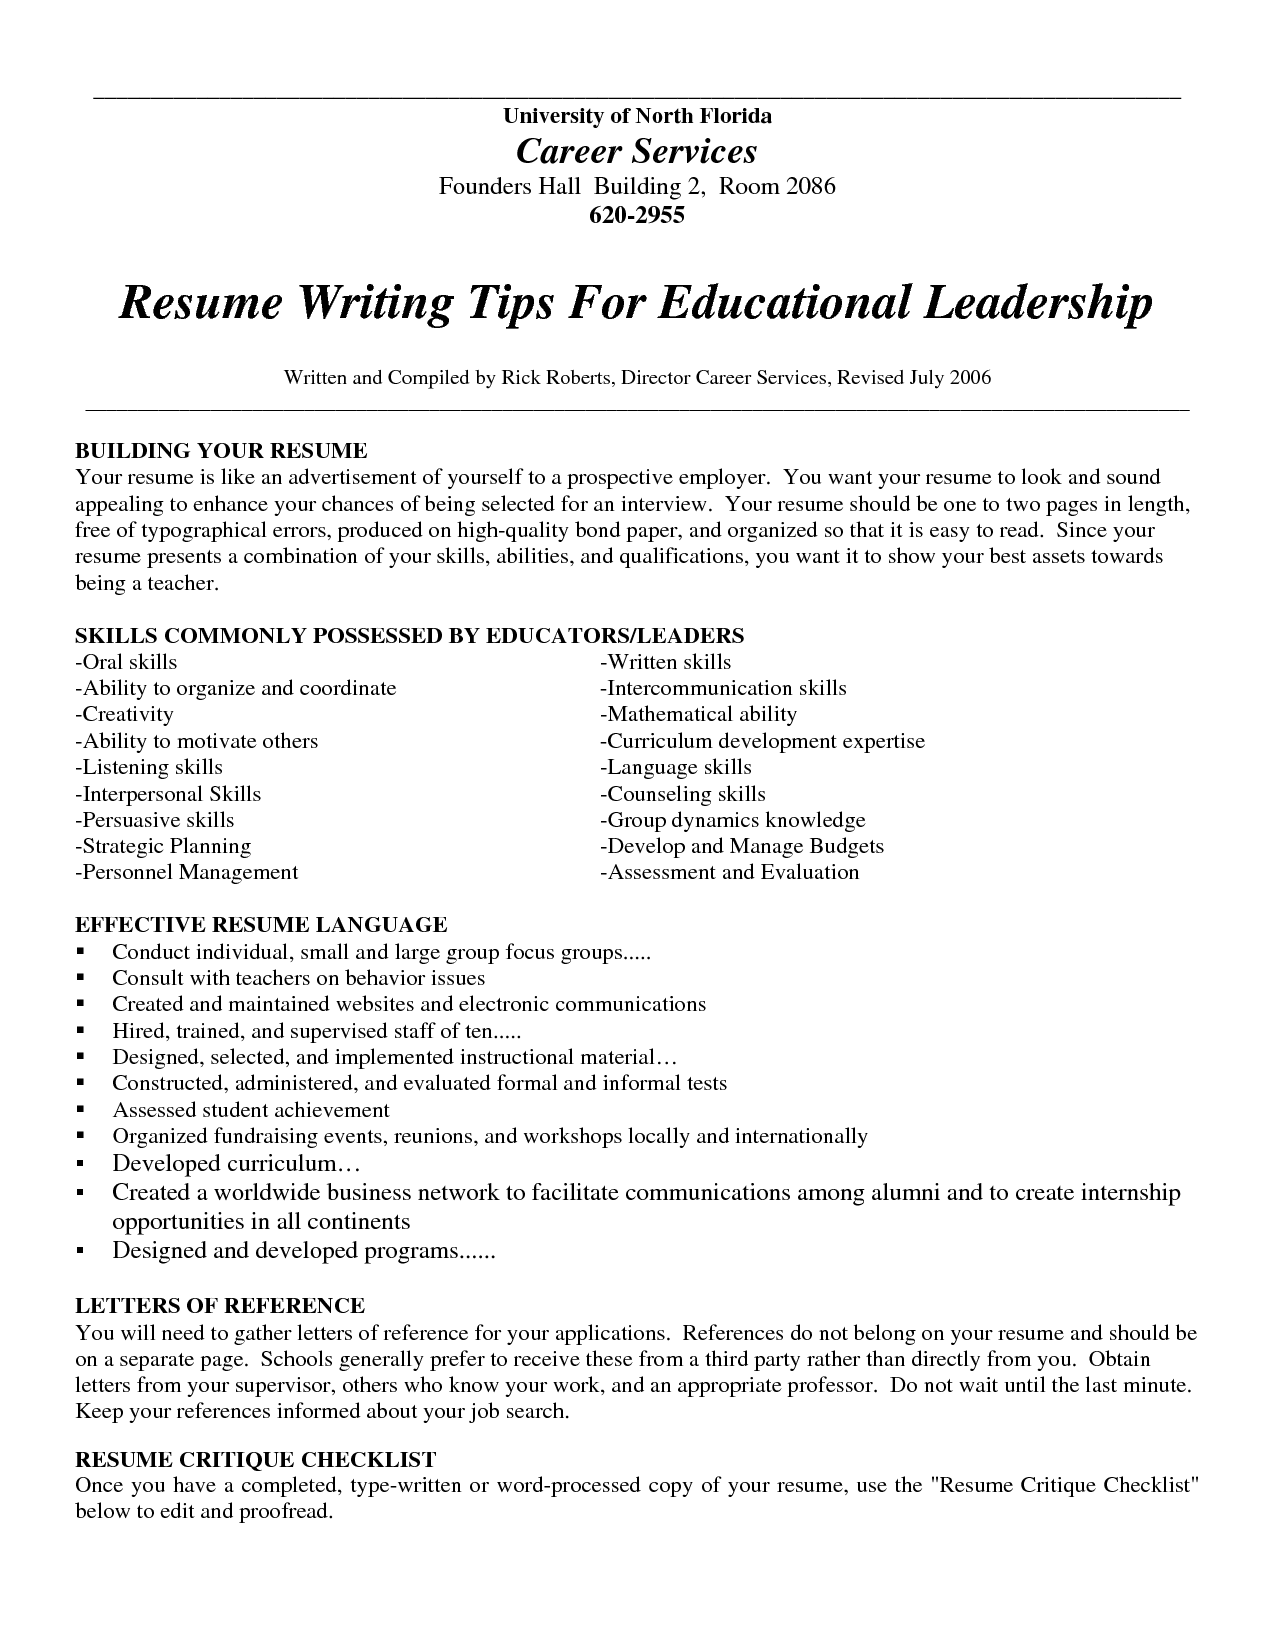 resume building tips template resume building tips resume tips resume